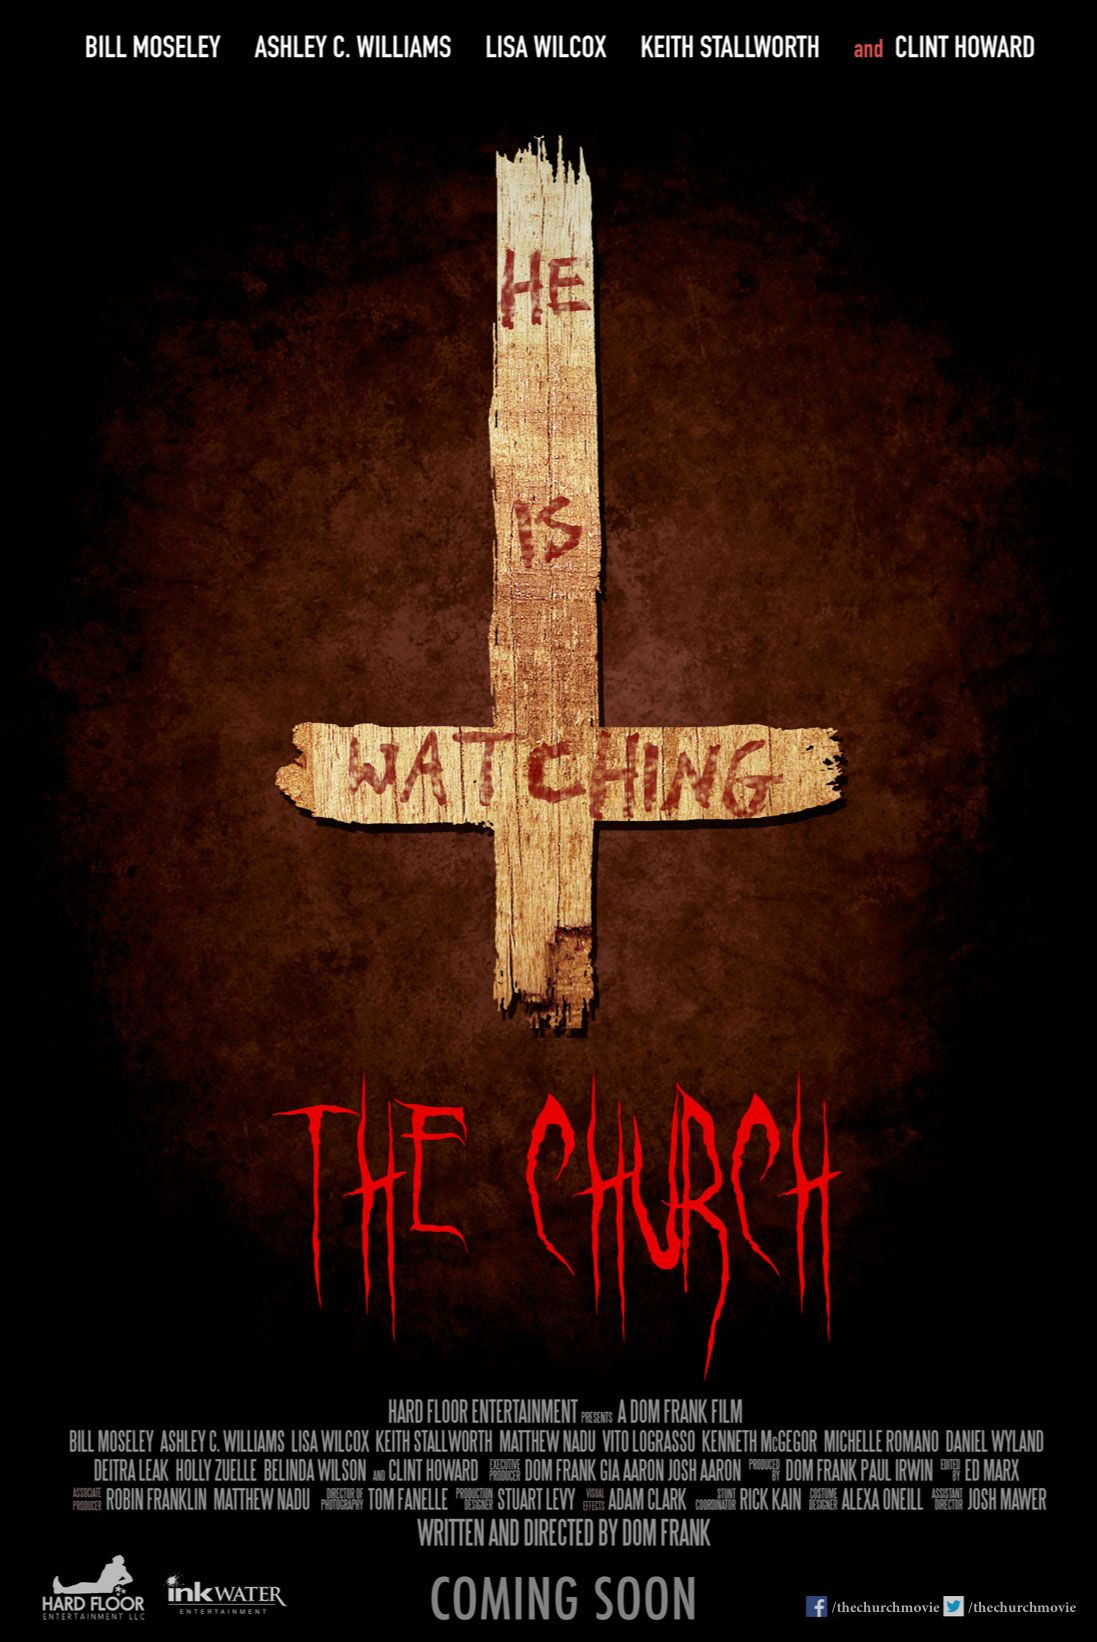 Worship Horror at The Church with Bill Moseley Newest